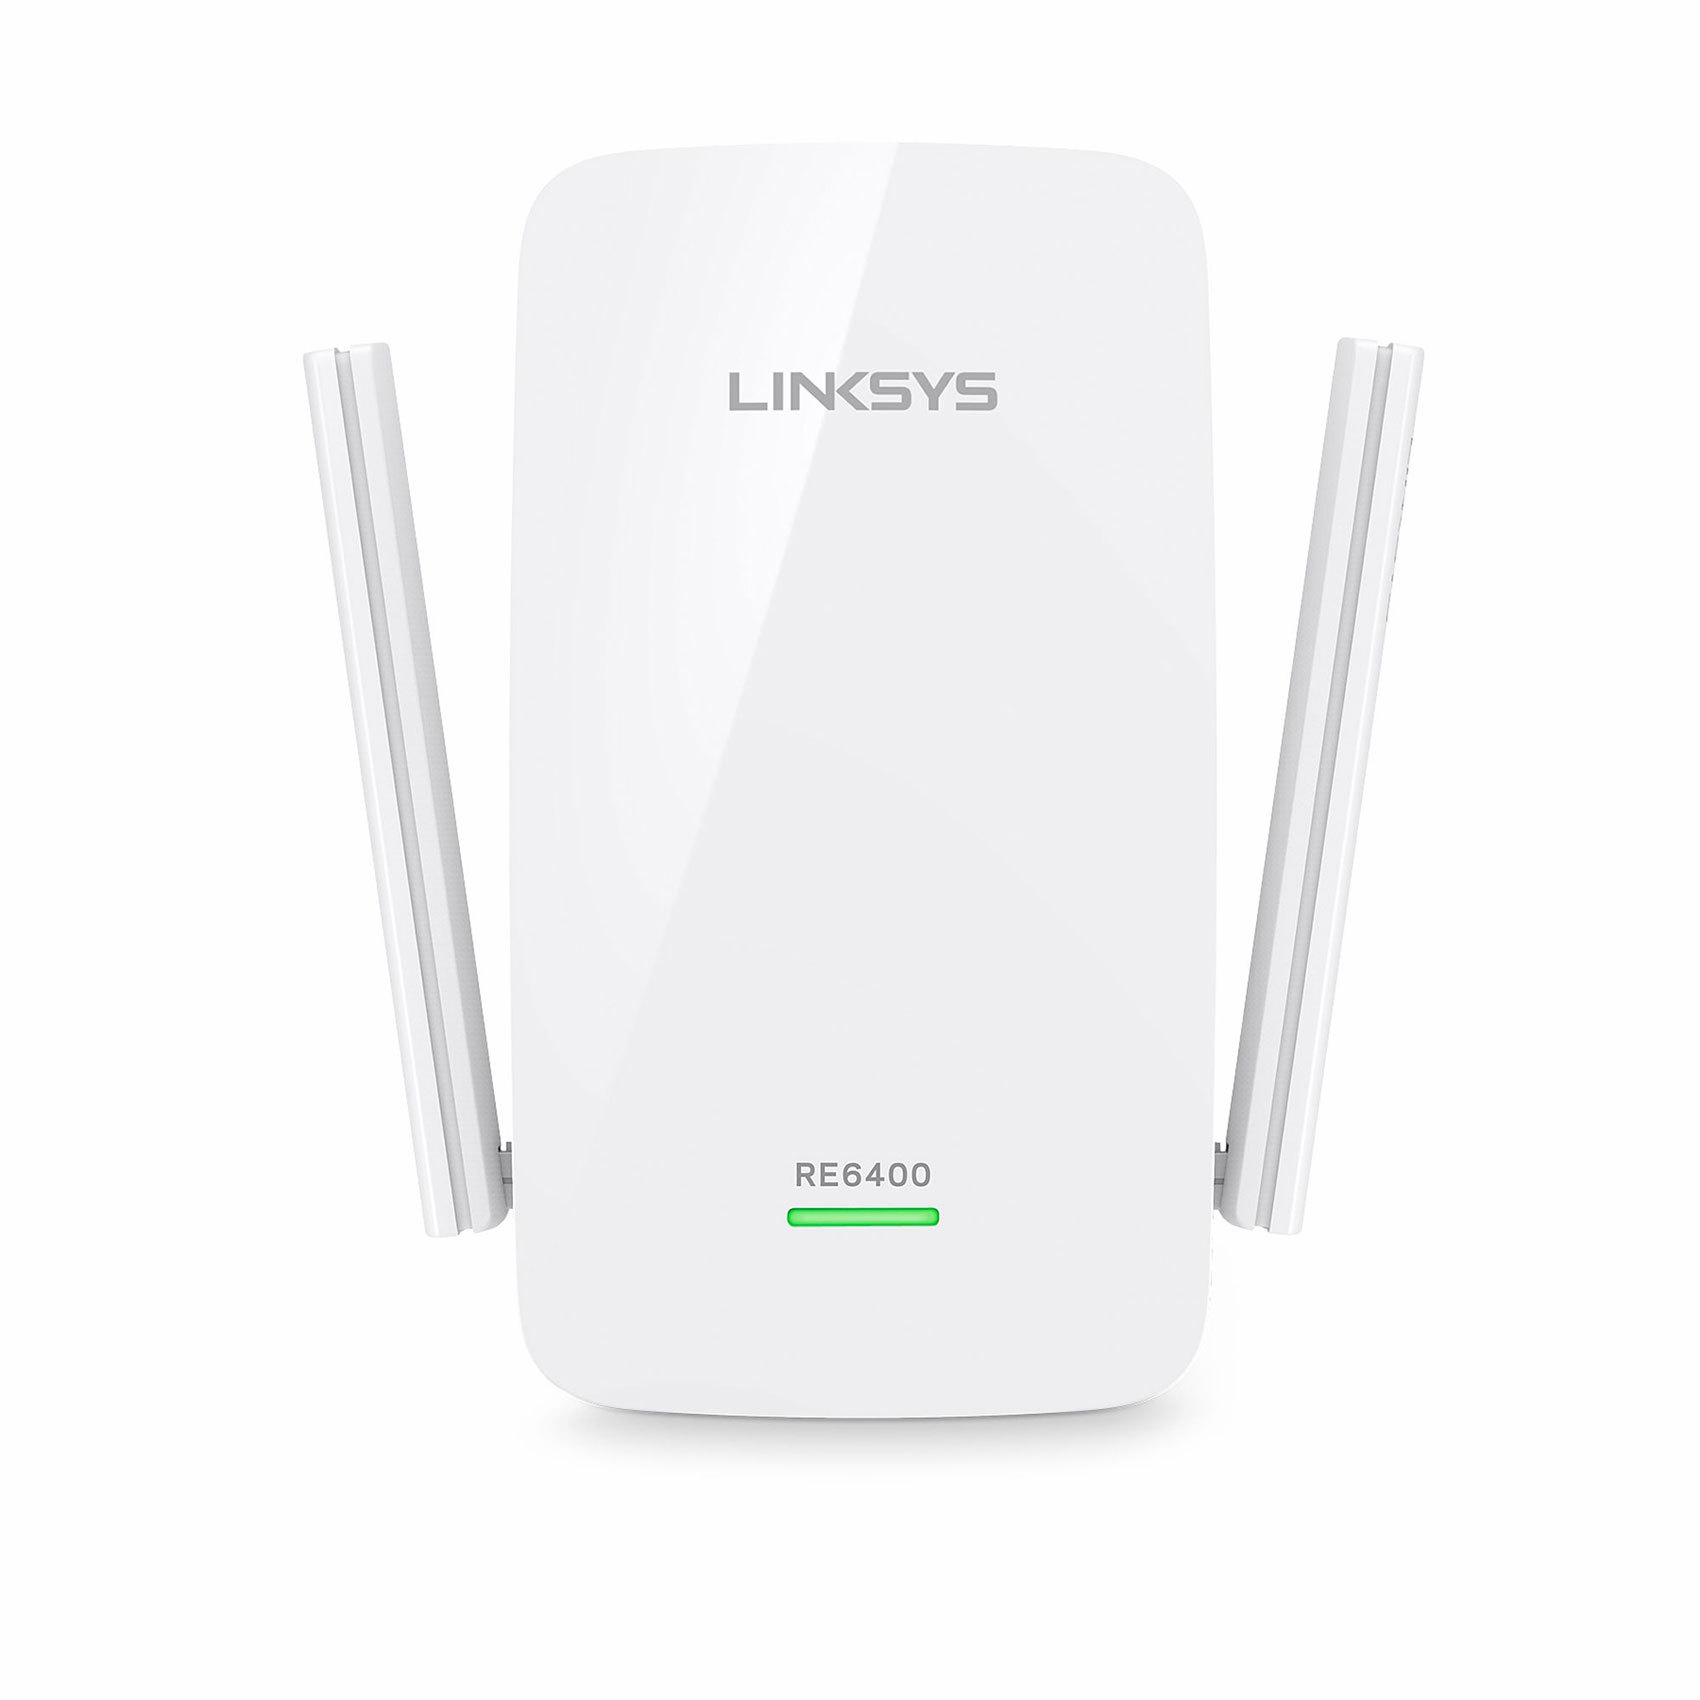 LINKSYS W/L AC1200 RE6400